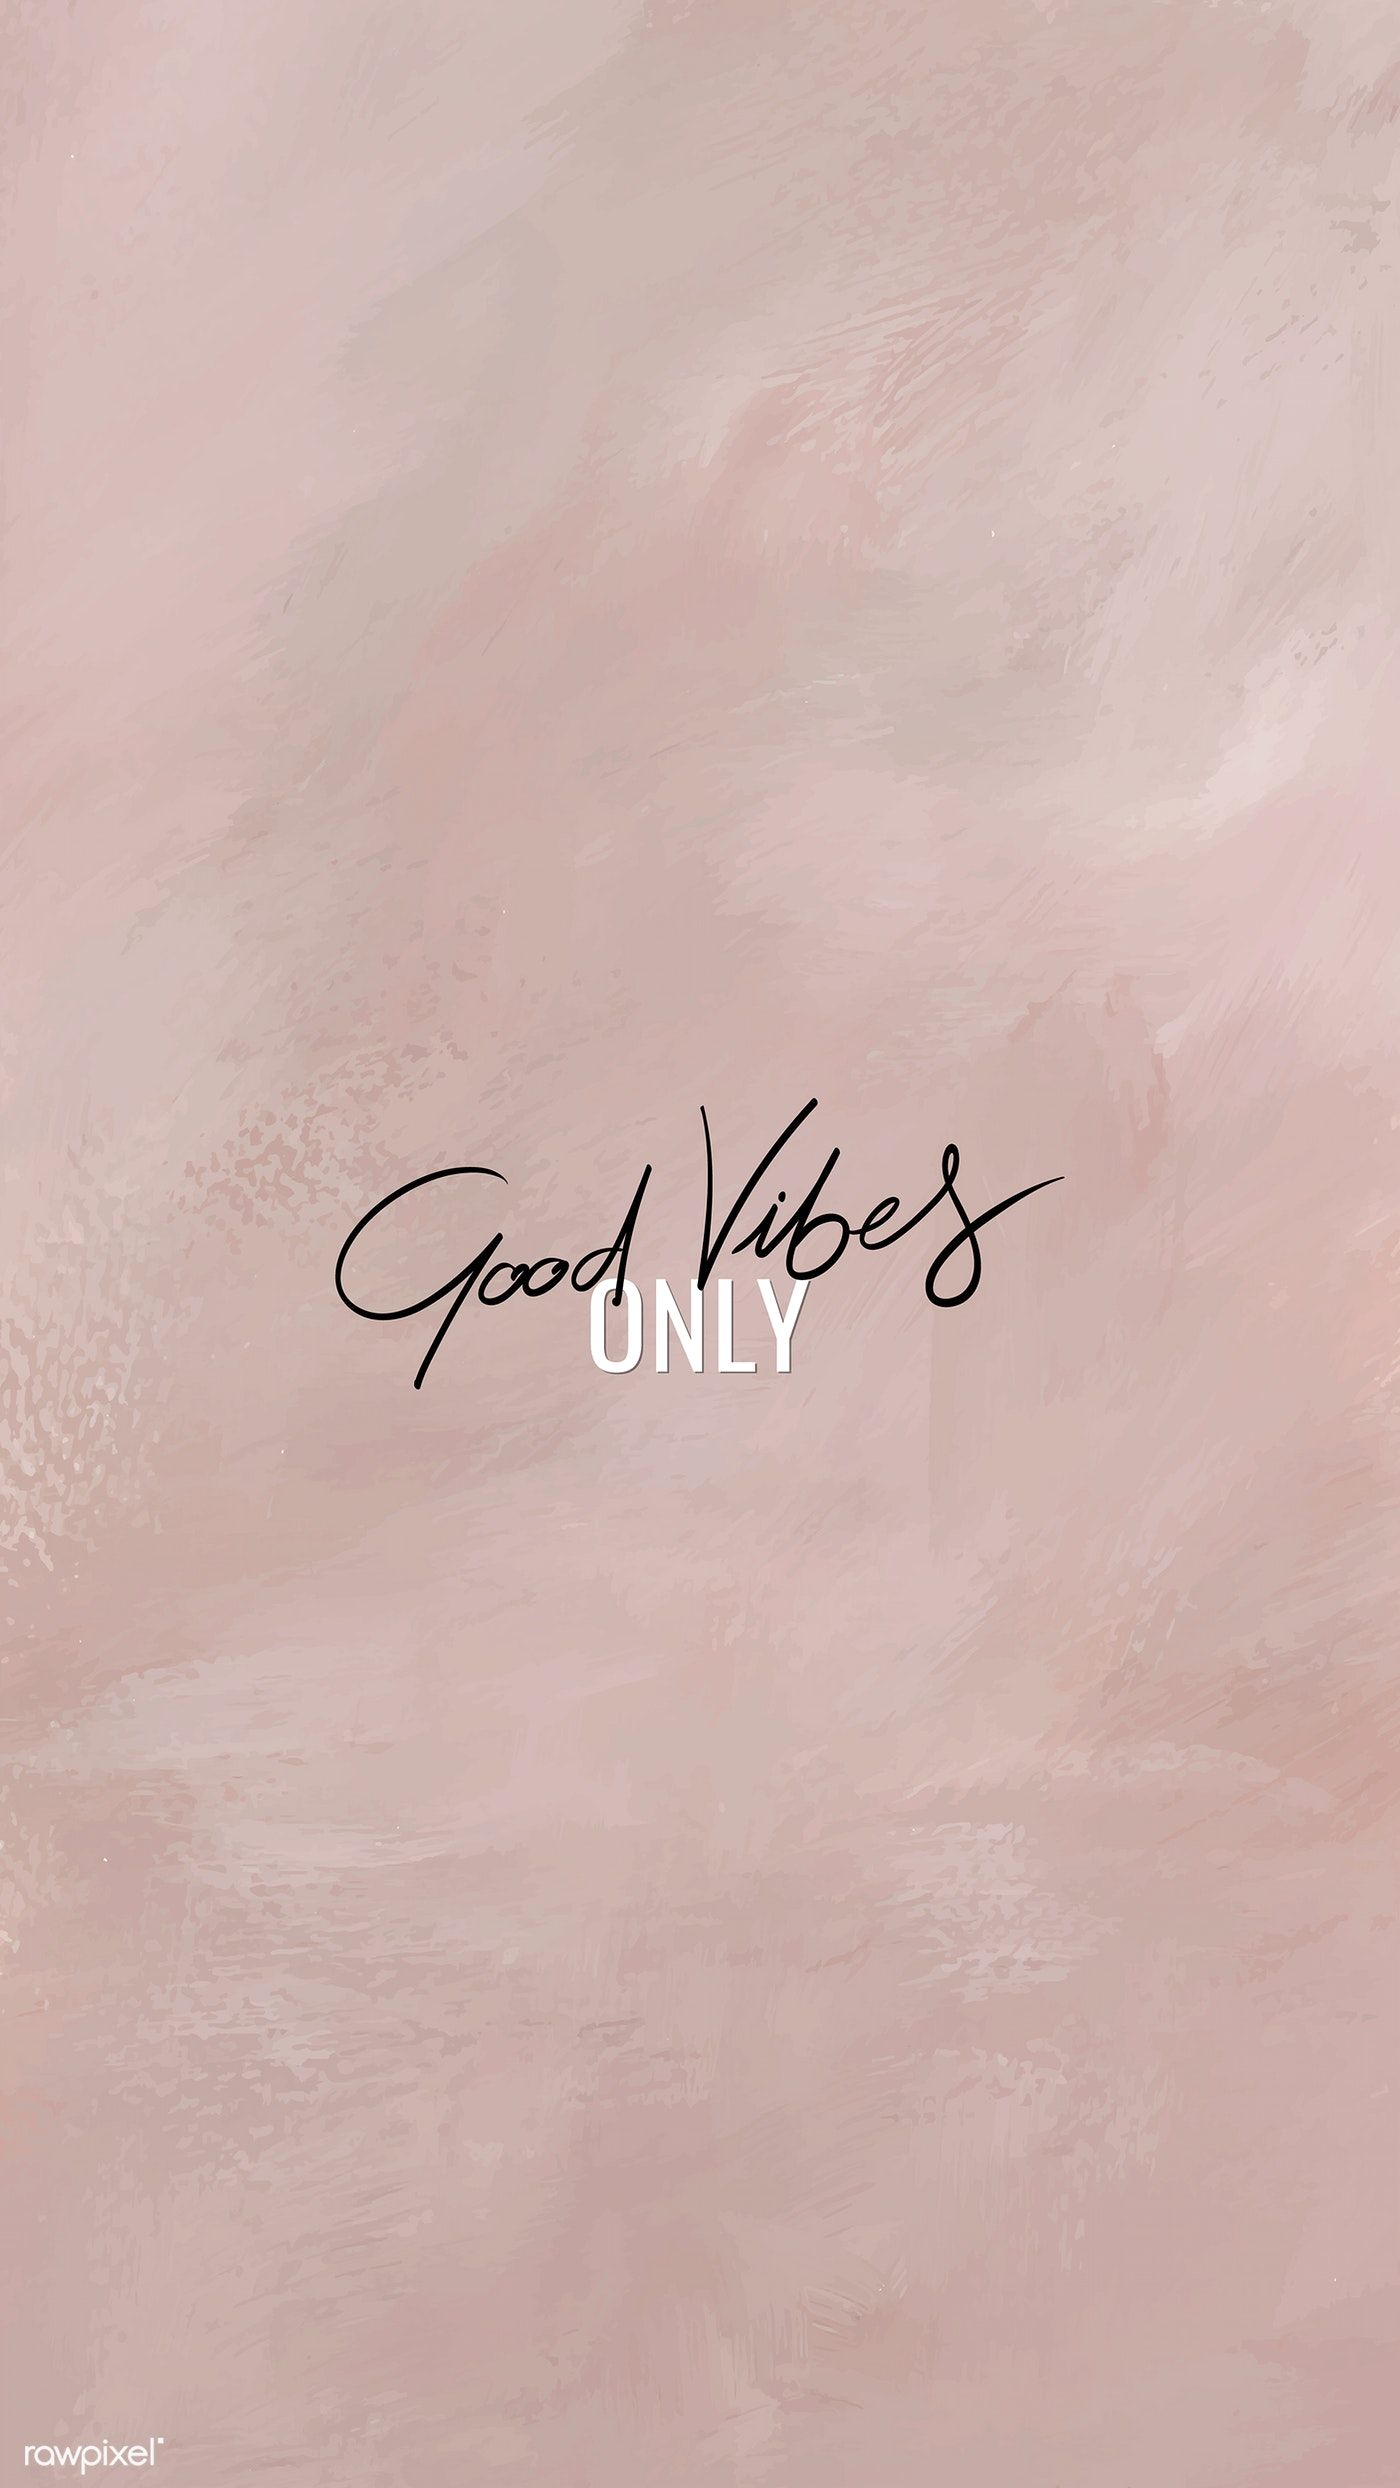 Good vibes only text mobile background vector free image